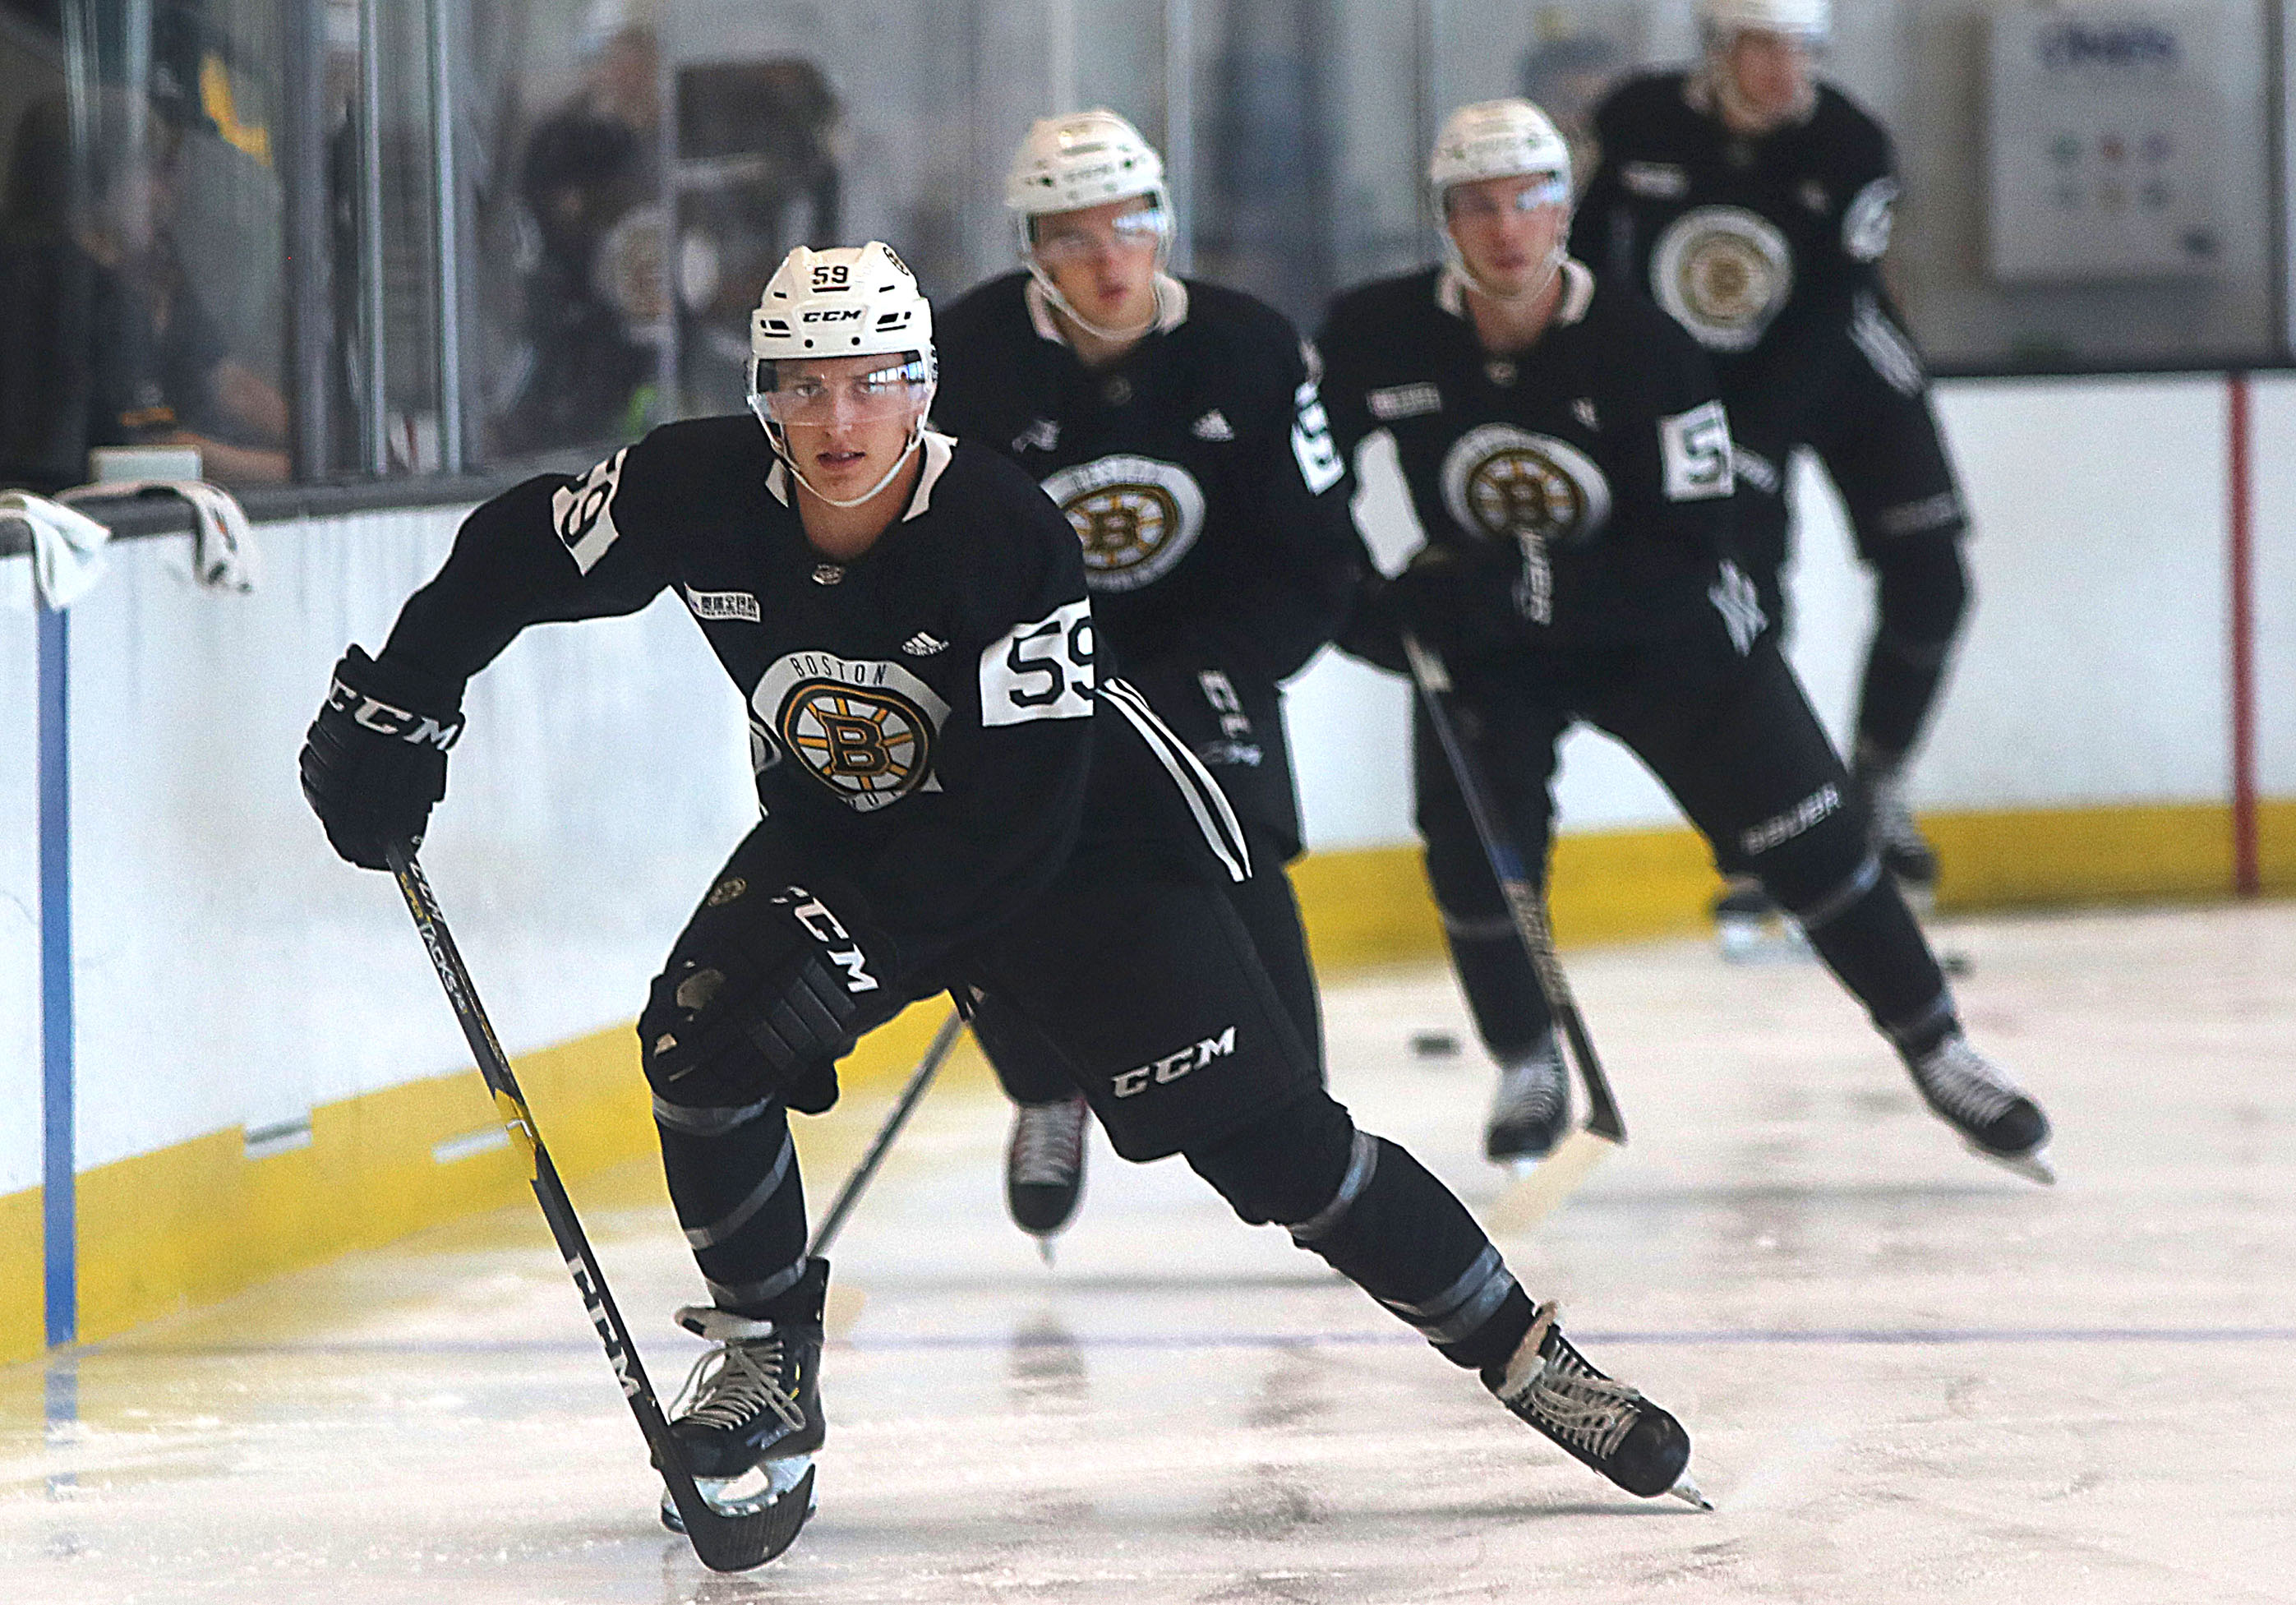 Cooper Zech hoping to measure up with Bruins